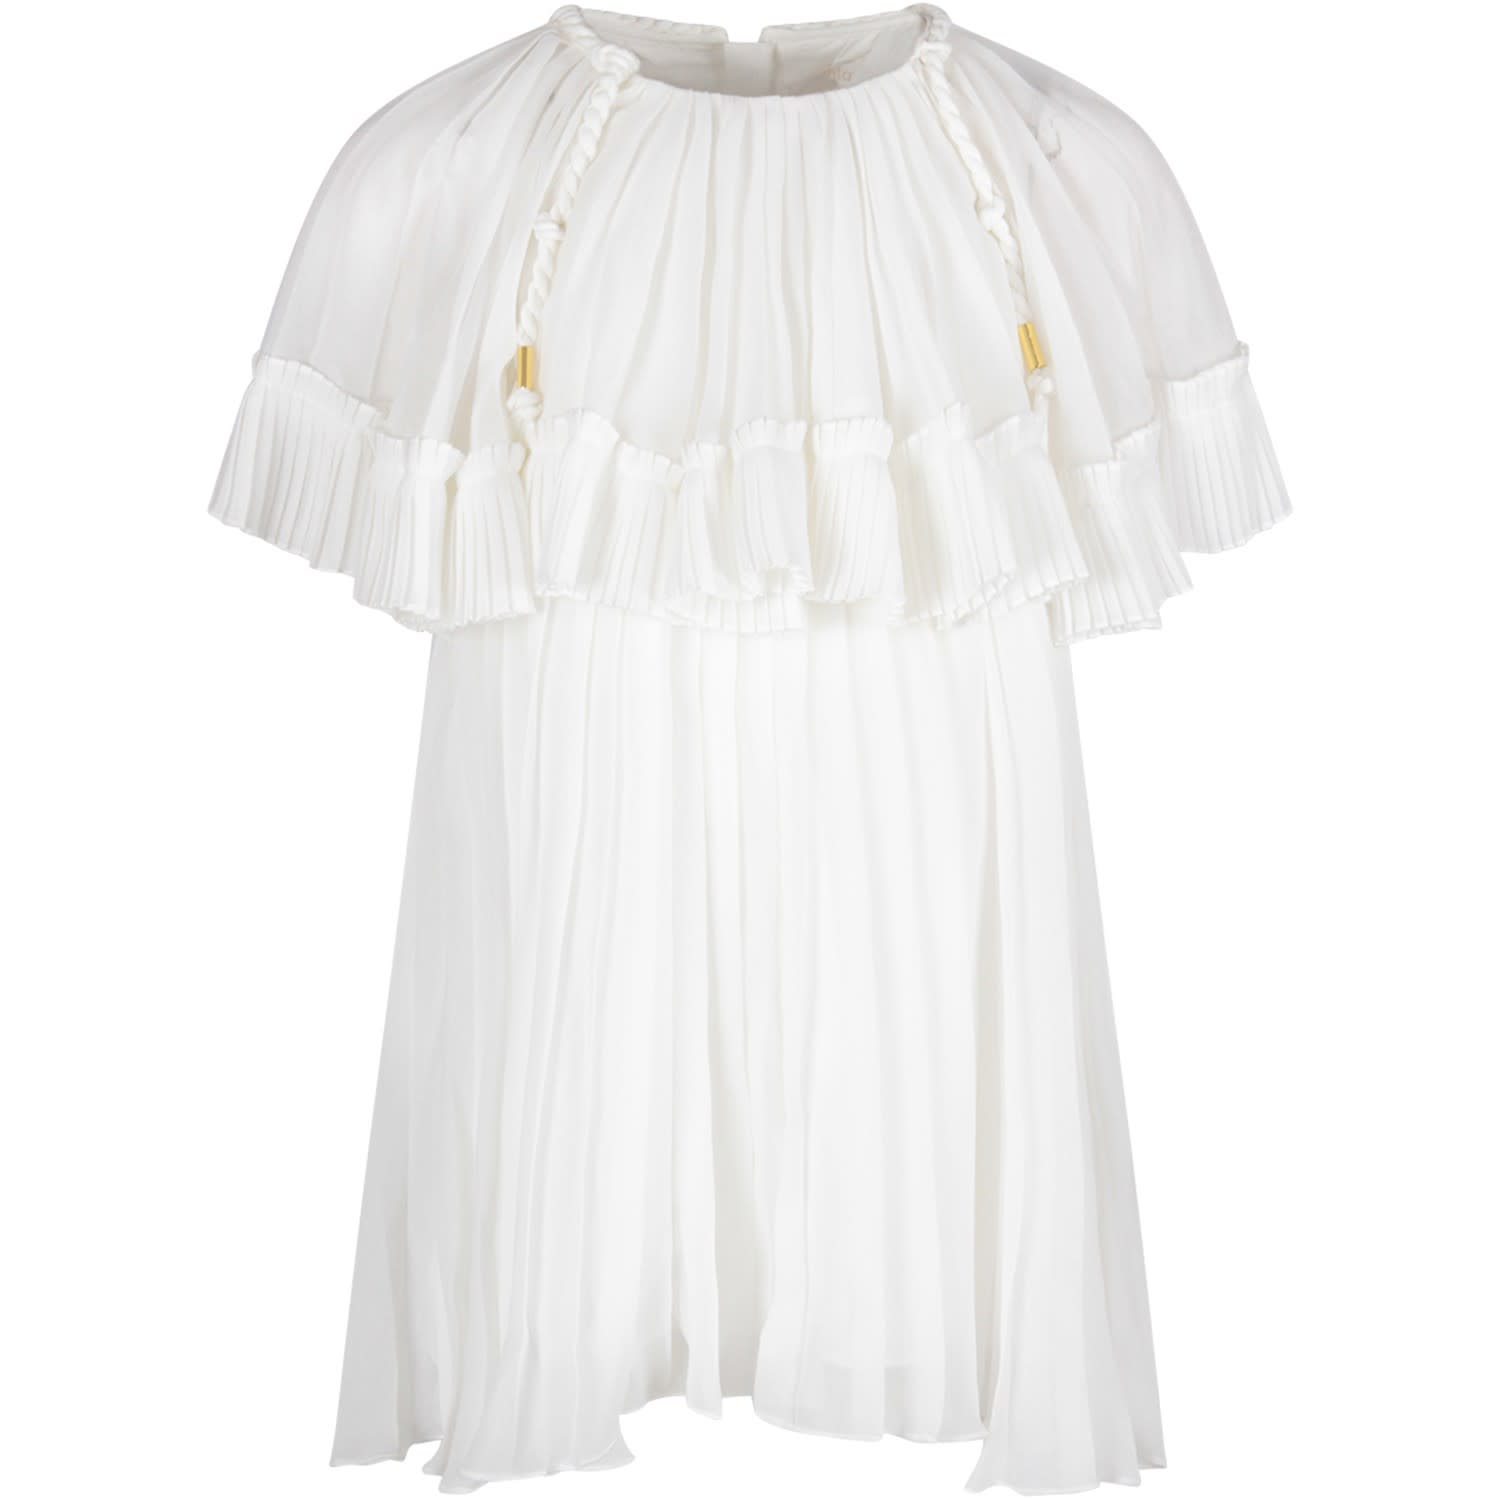 Buy Chloé White Girl Dress With Pleated online, shop Chloé with free shipping